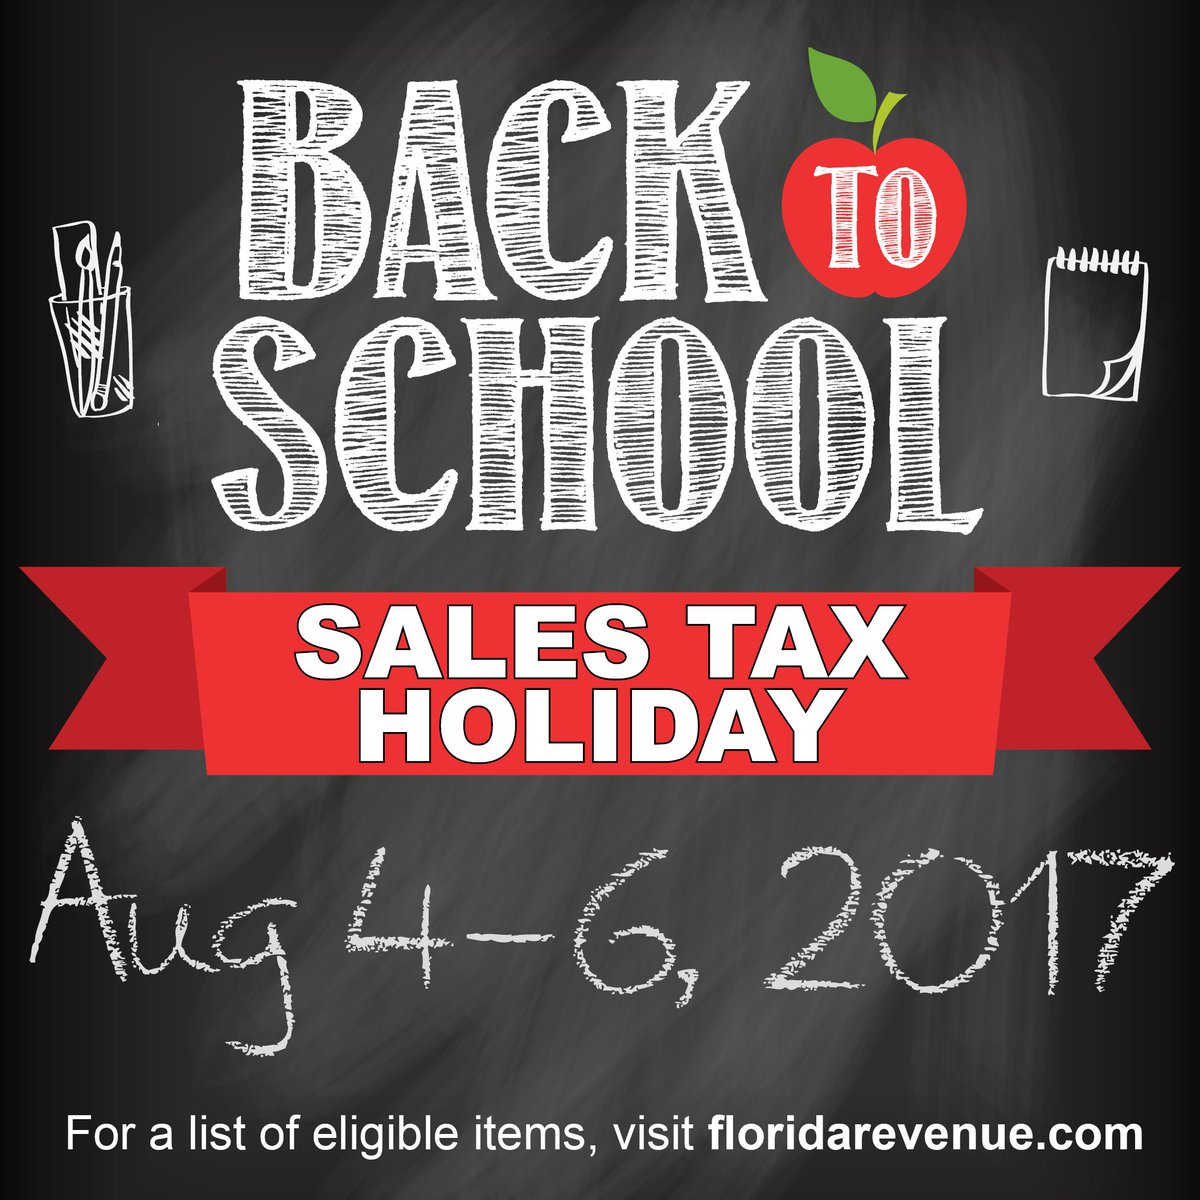 #FLfamilies Don't forget the #FLBack2School Sales Tax holiday begins August 4-6! #FLedu https://t.co/p83ILBs1fP